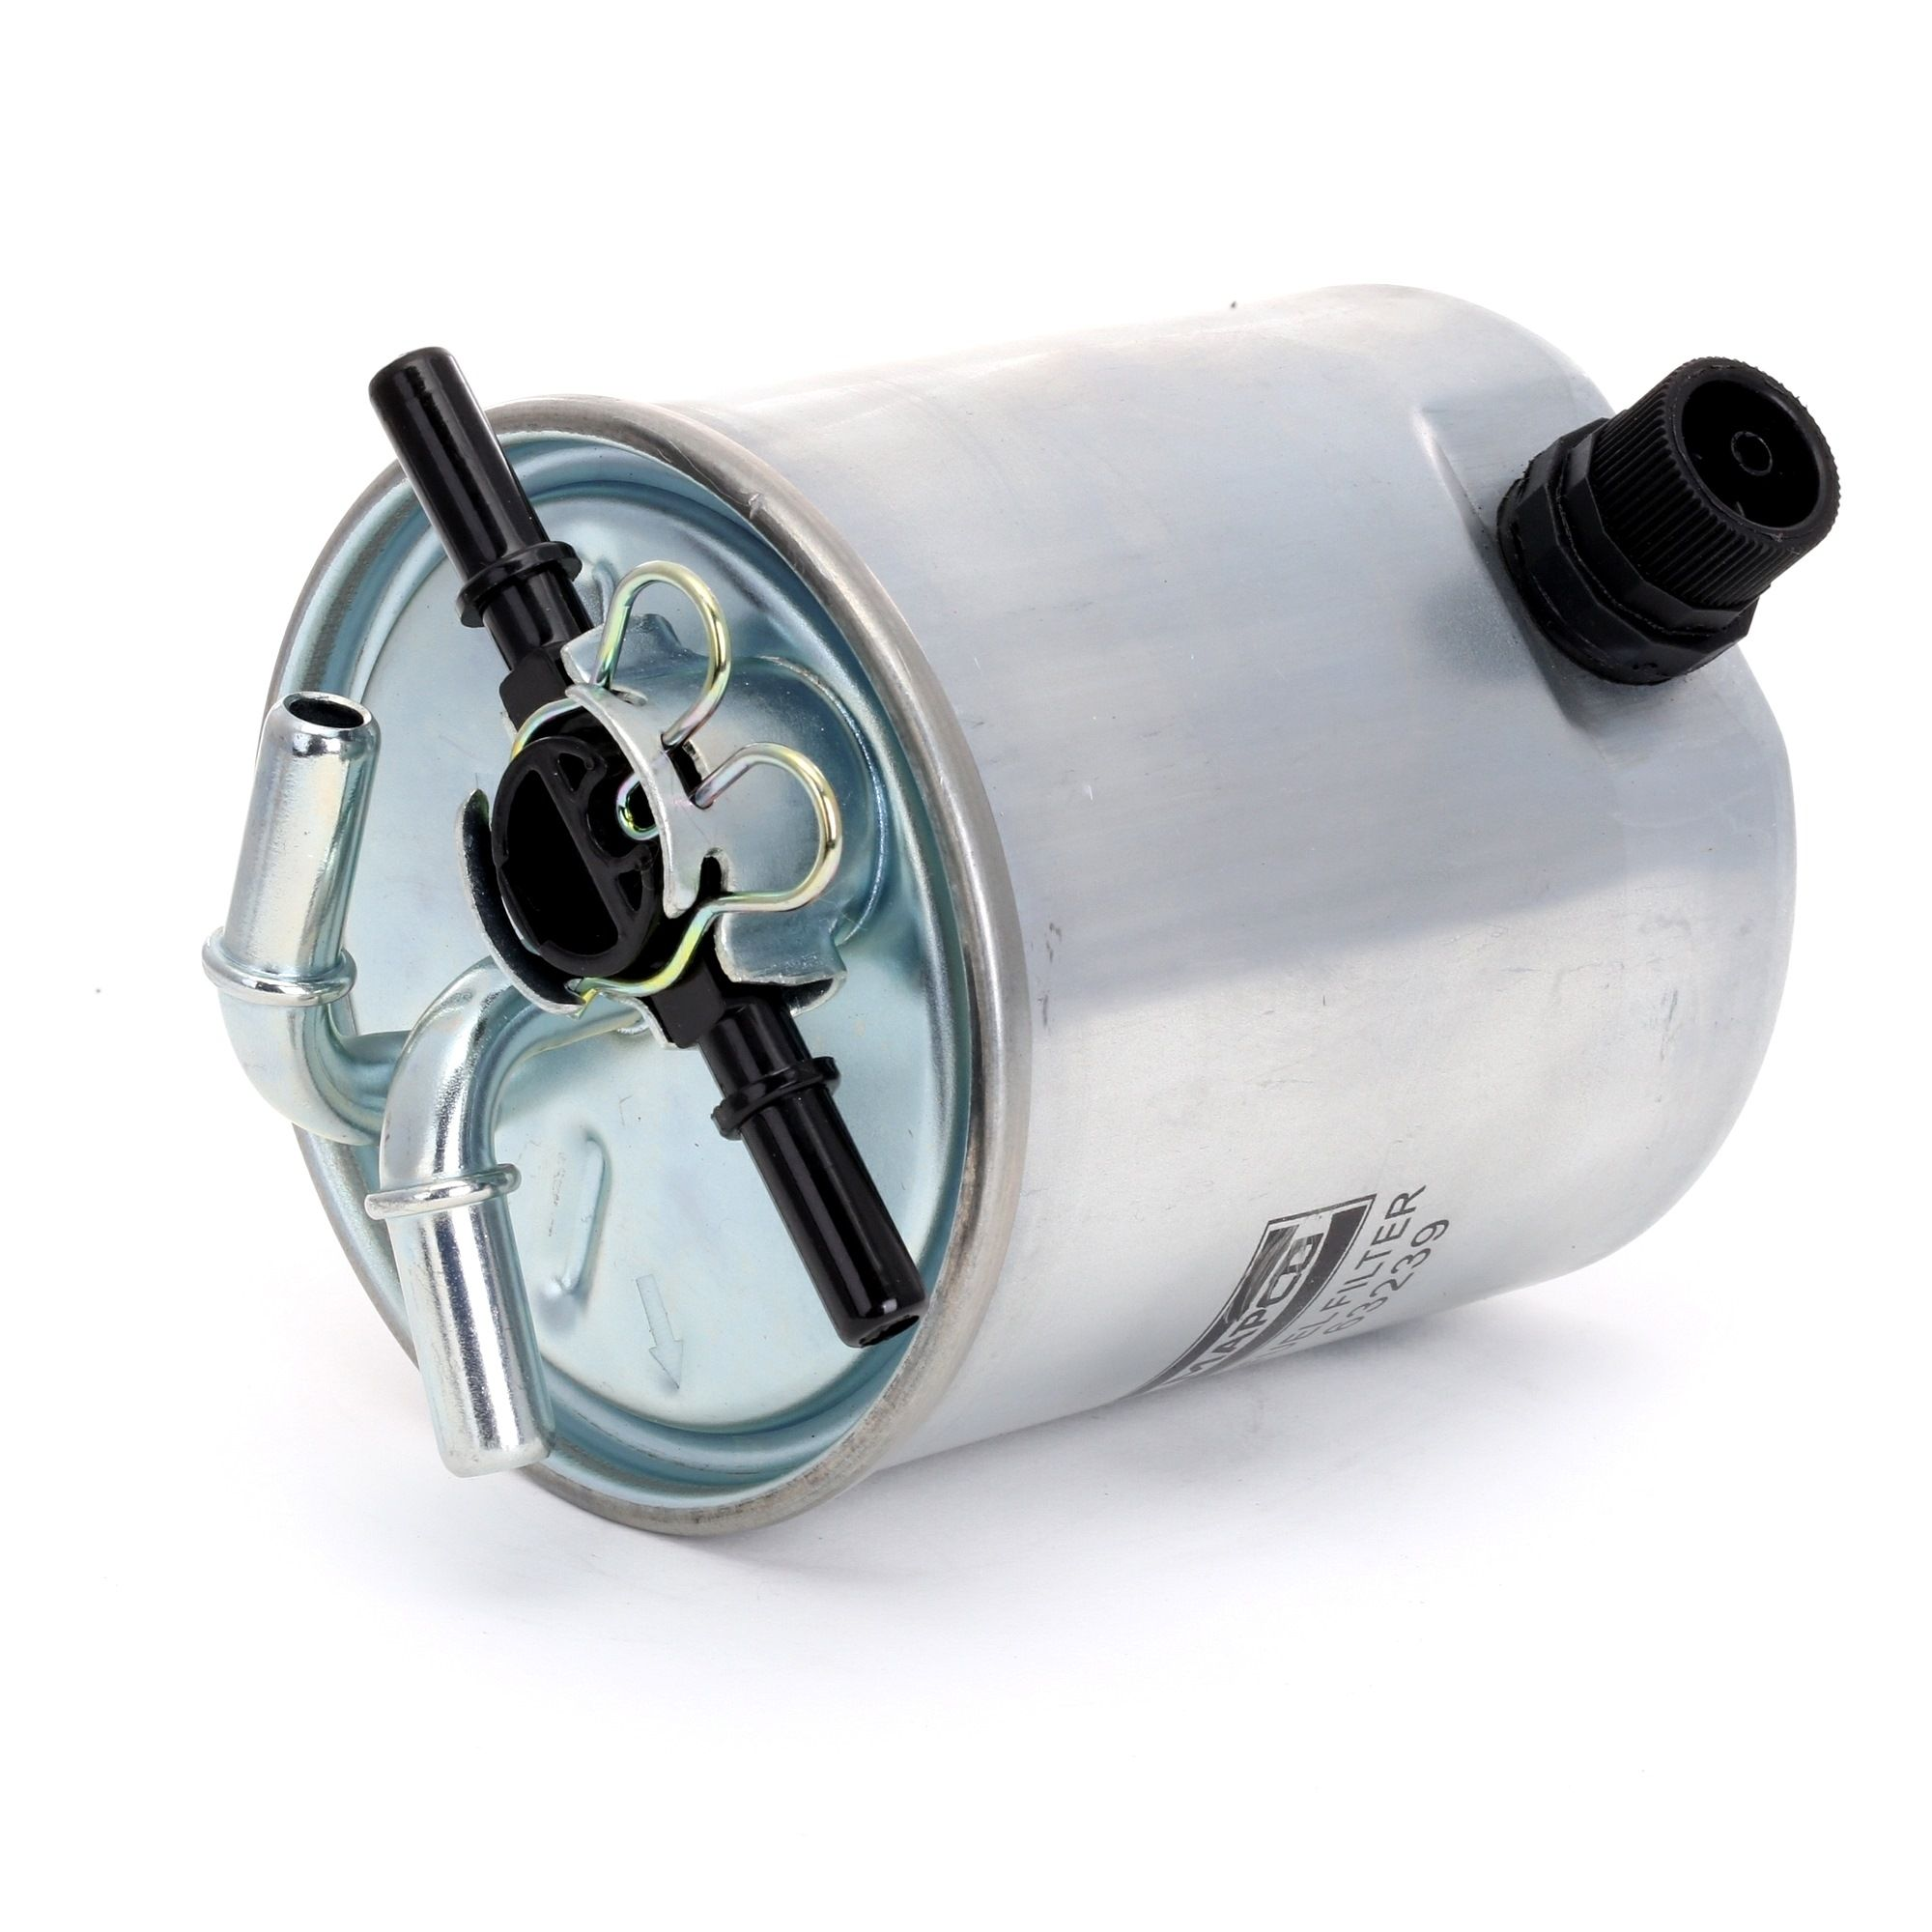 Fuel filter MAPCO 63239 rating